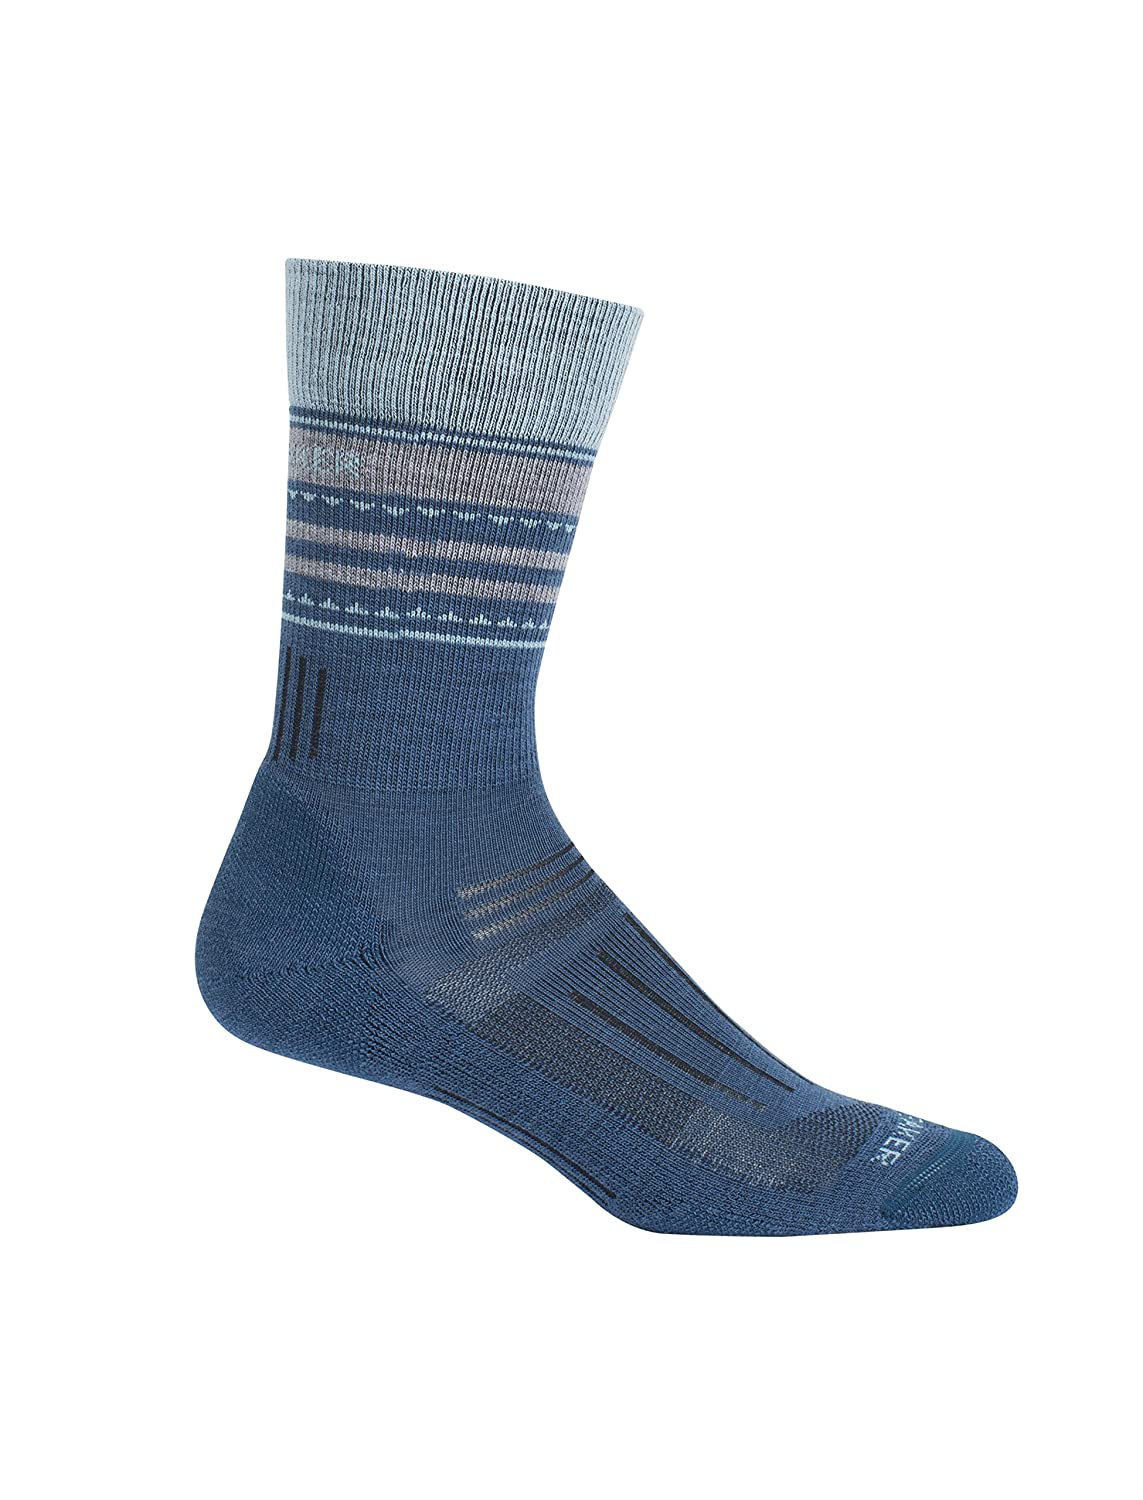 Icebreaker Women's Hike Plus Med Crew Socks IBND15